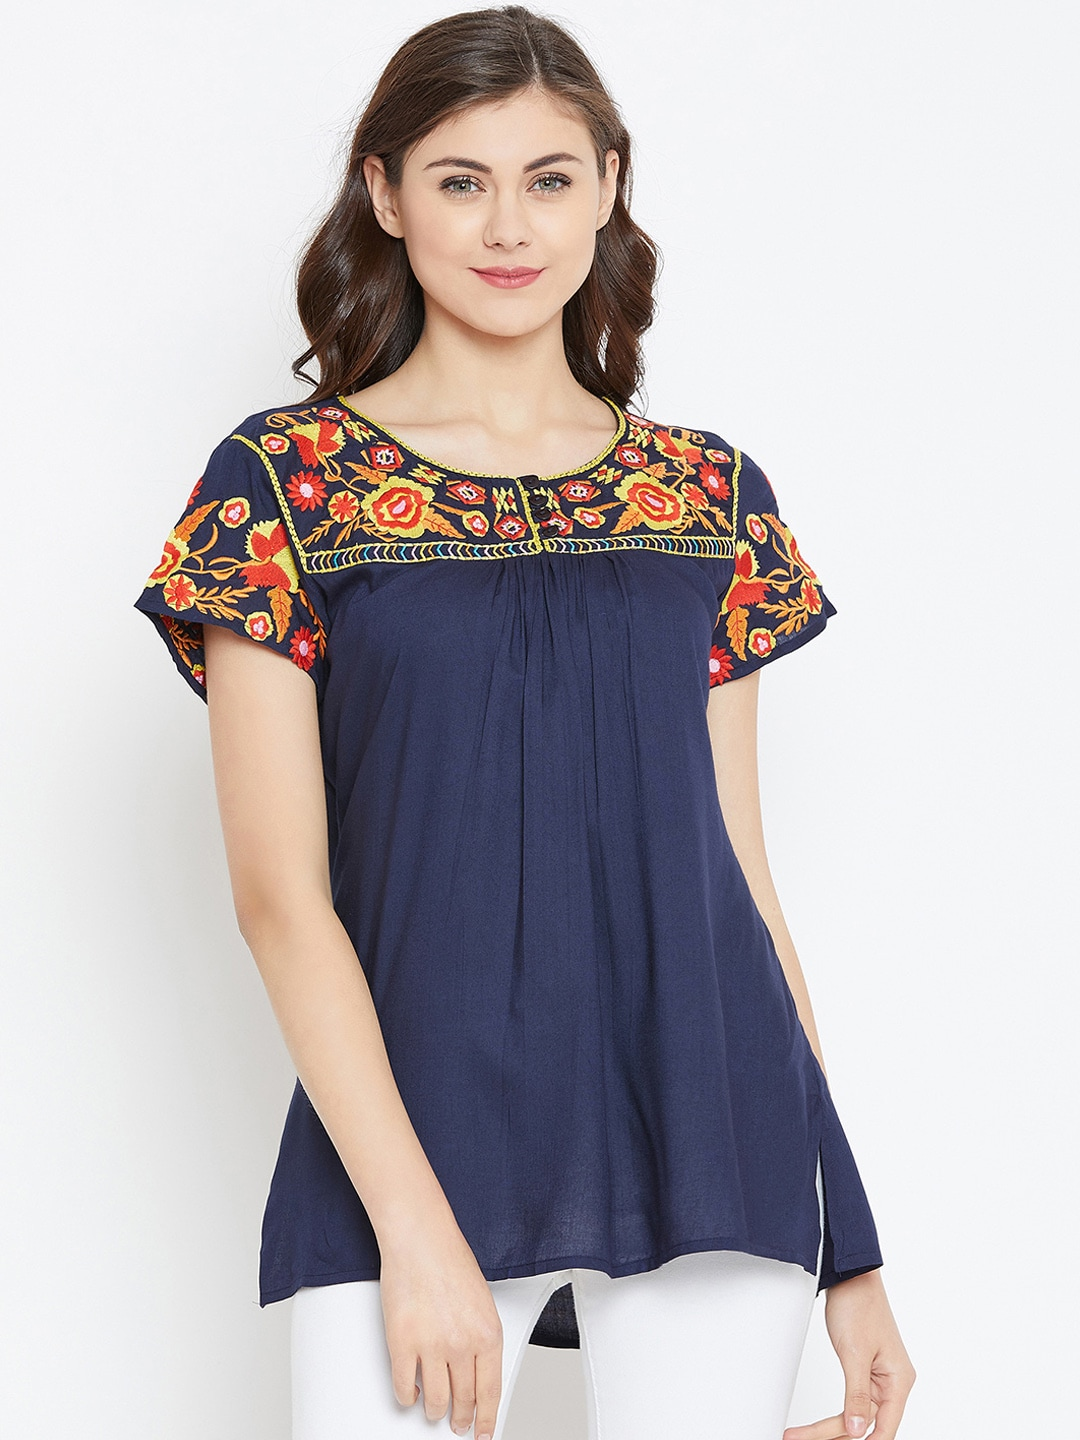 74e345e038 Floral Tops - Buy Floral Tops for Girls   Women Online